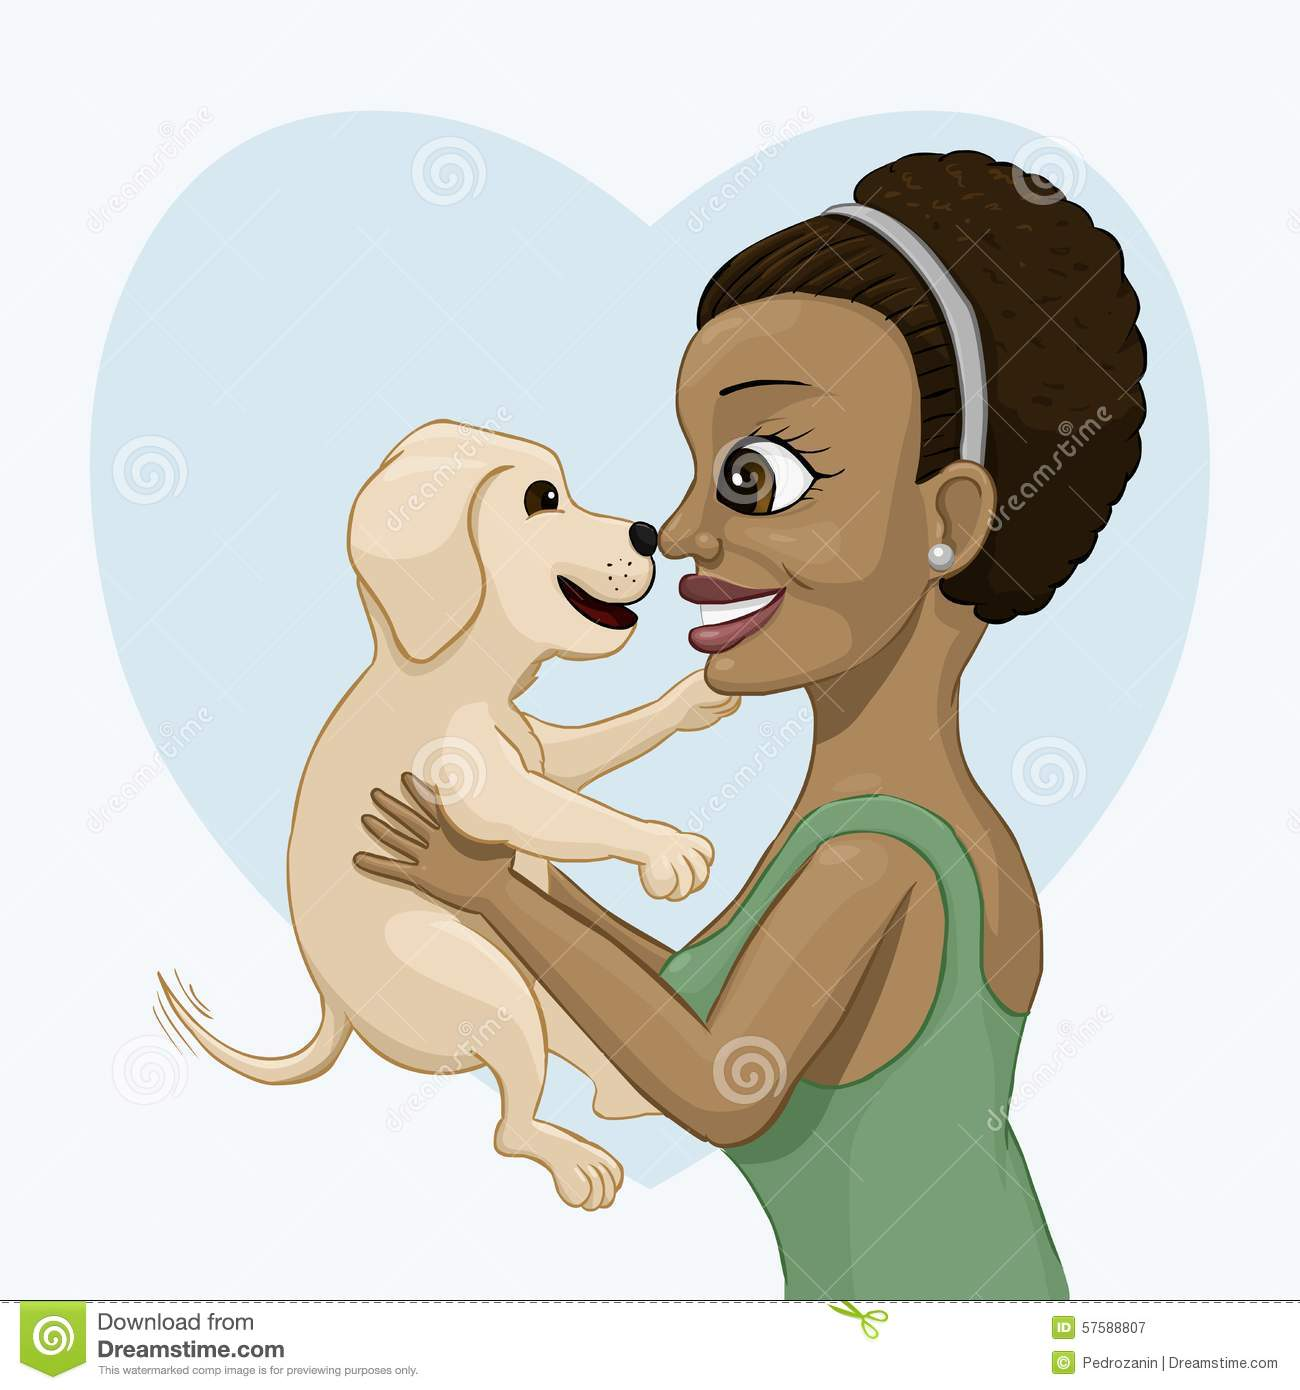 The lady with dog